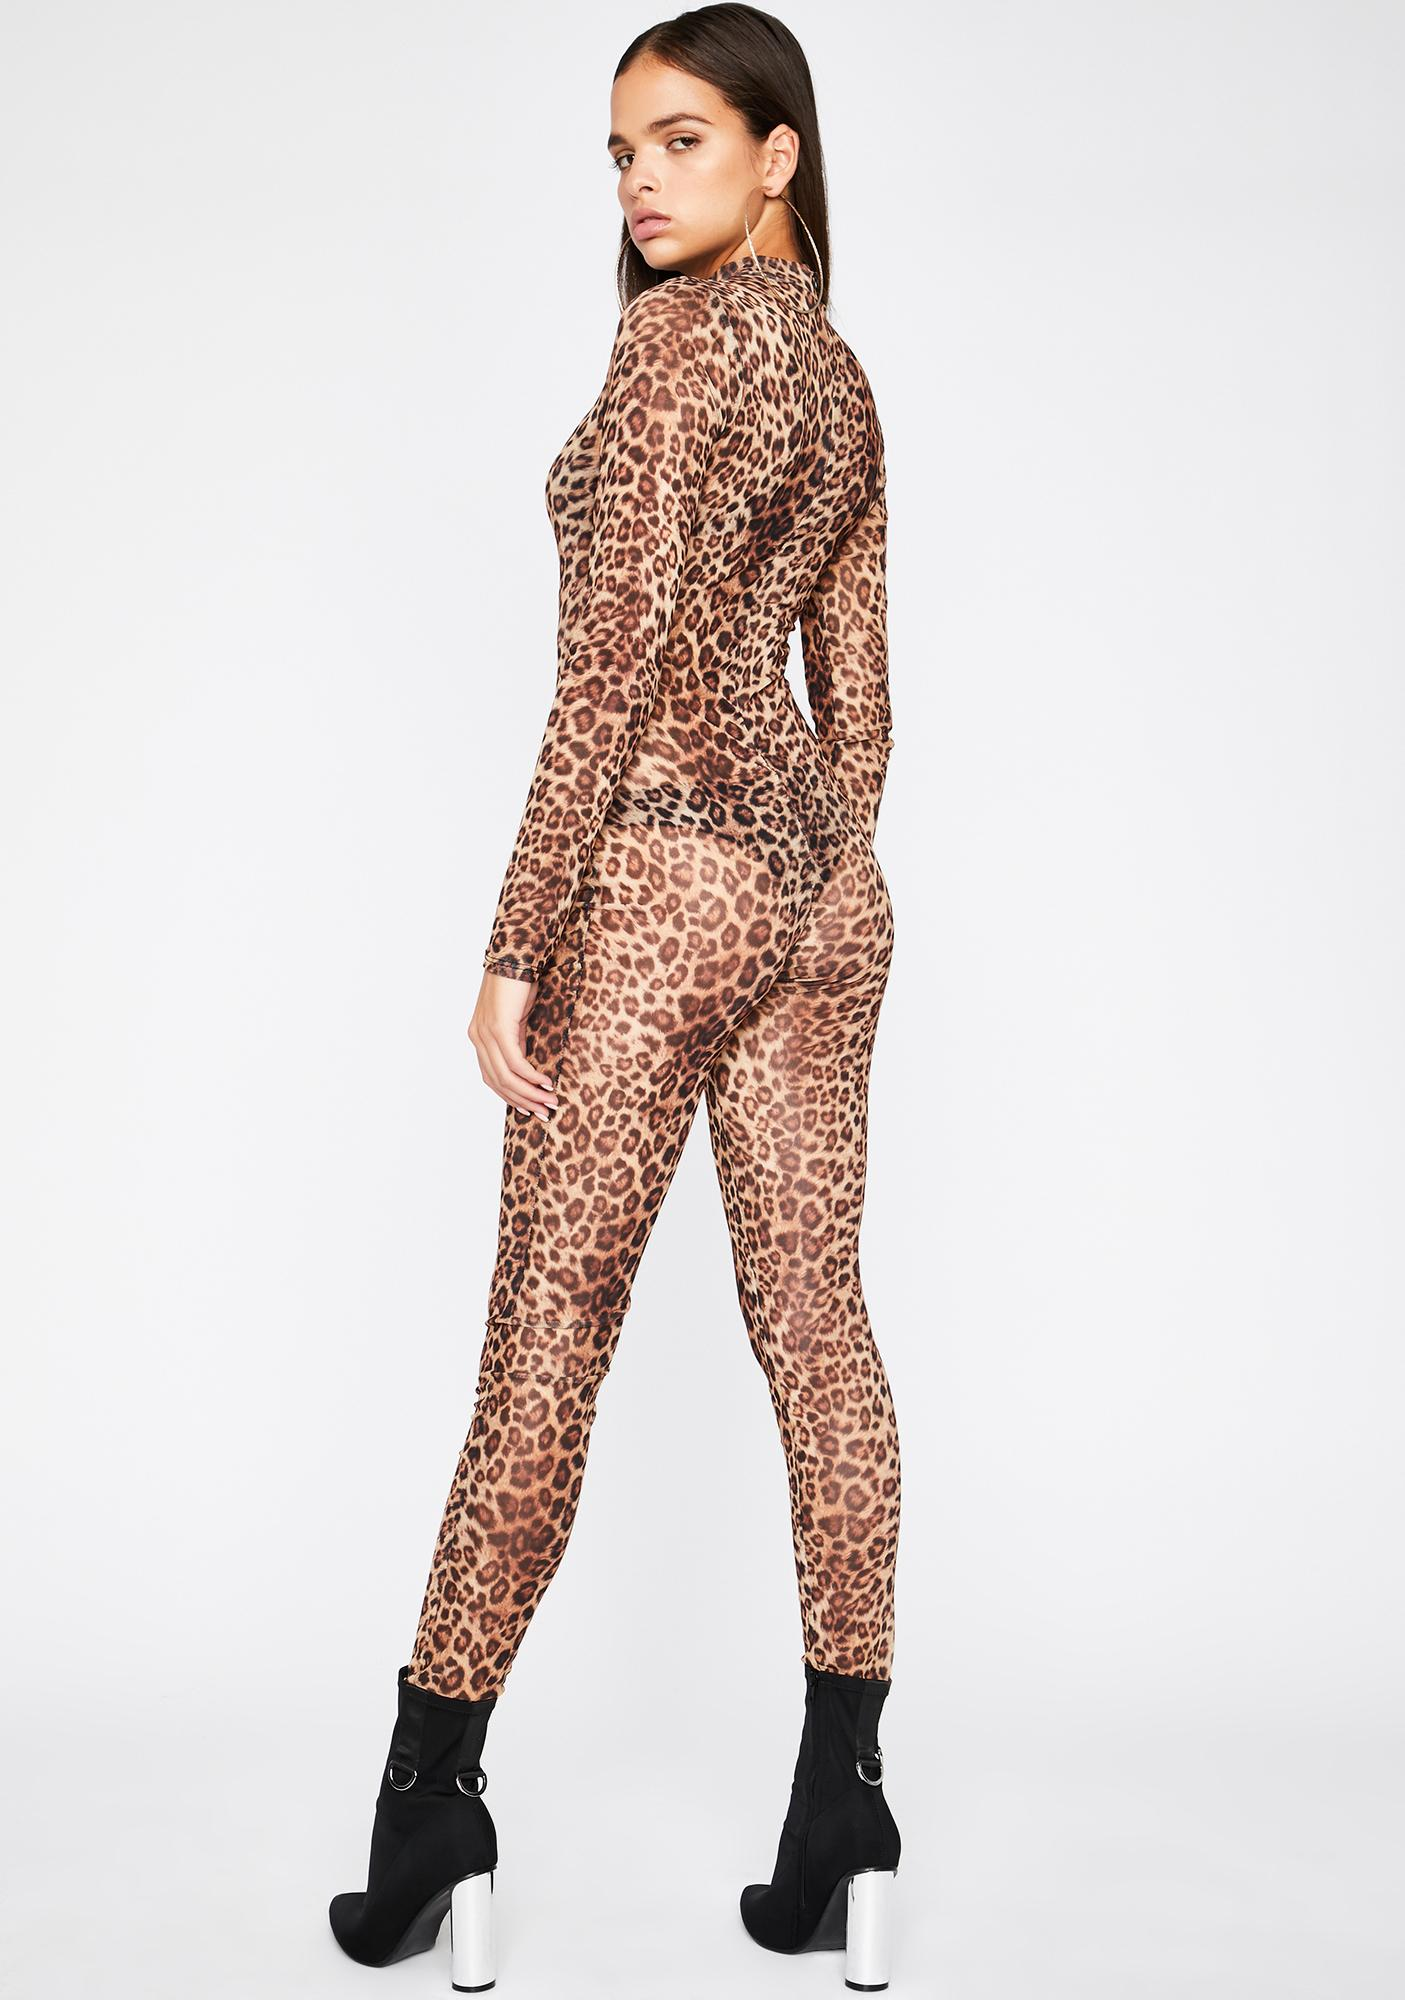 Atomic Alley Cat Sheer Catsuit